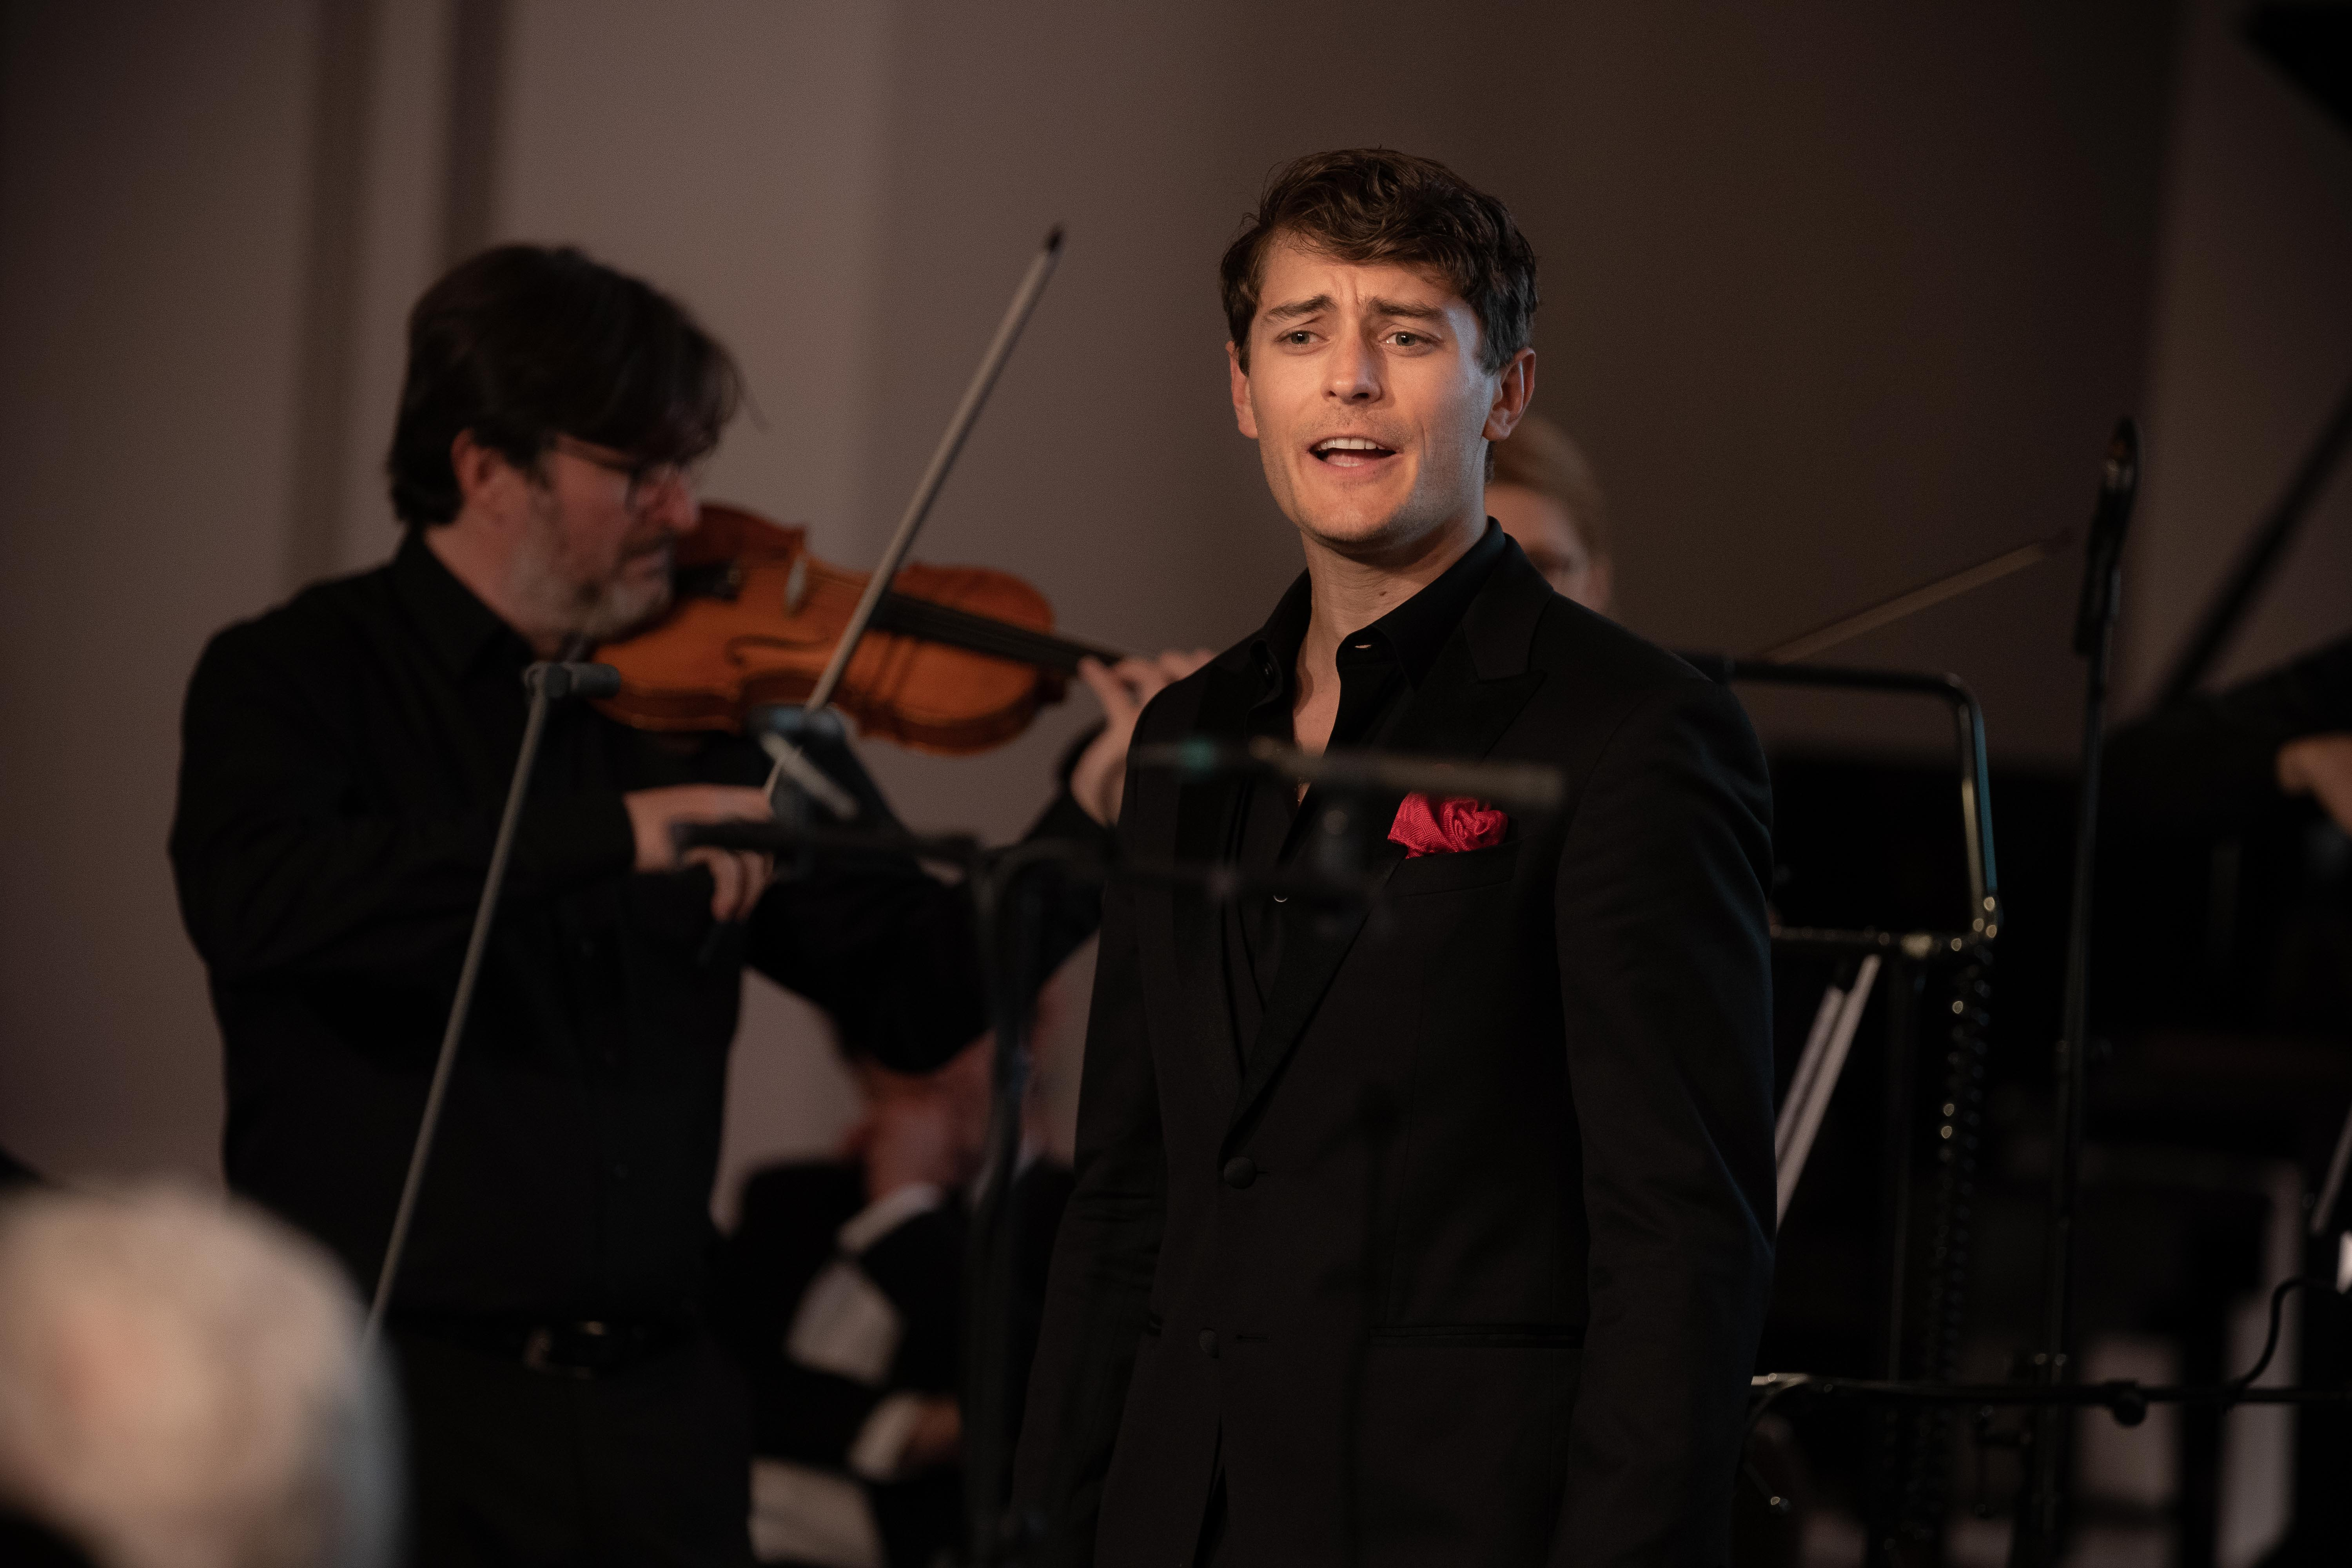 Gramophone's 2019 Young Artist of the Year Award has been won by Jakub Józef Orlinski.